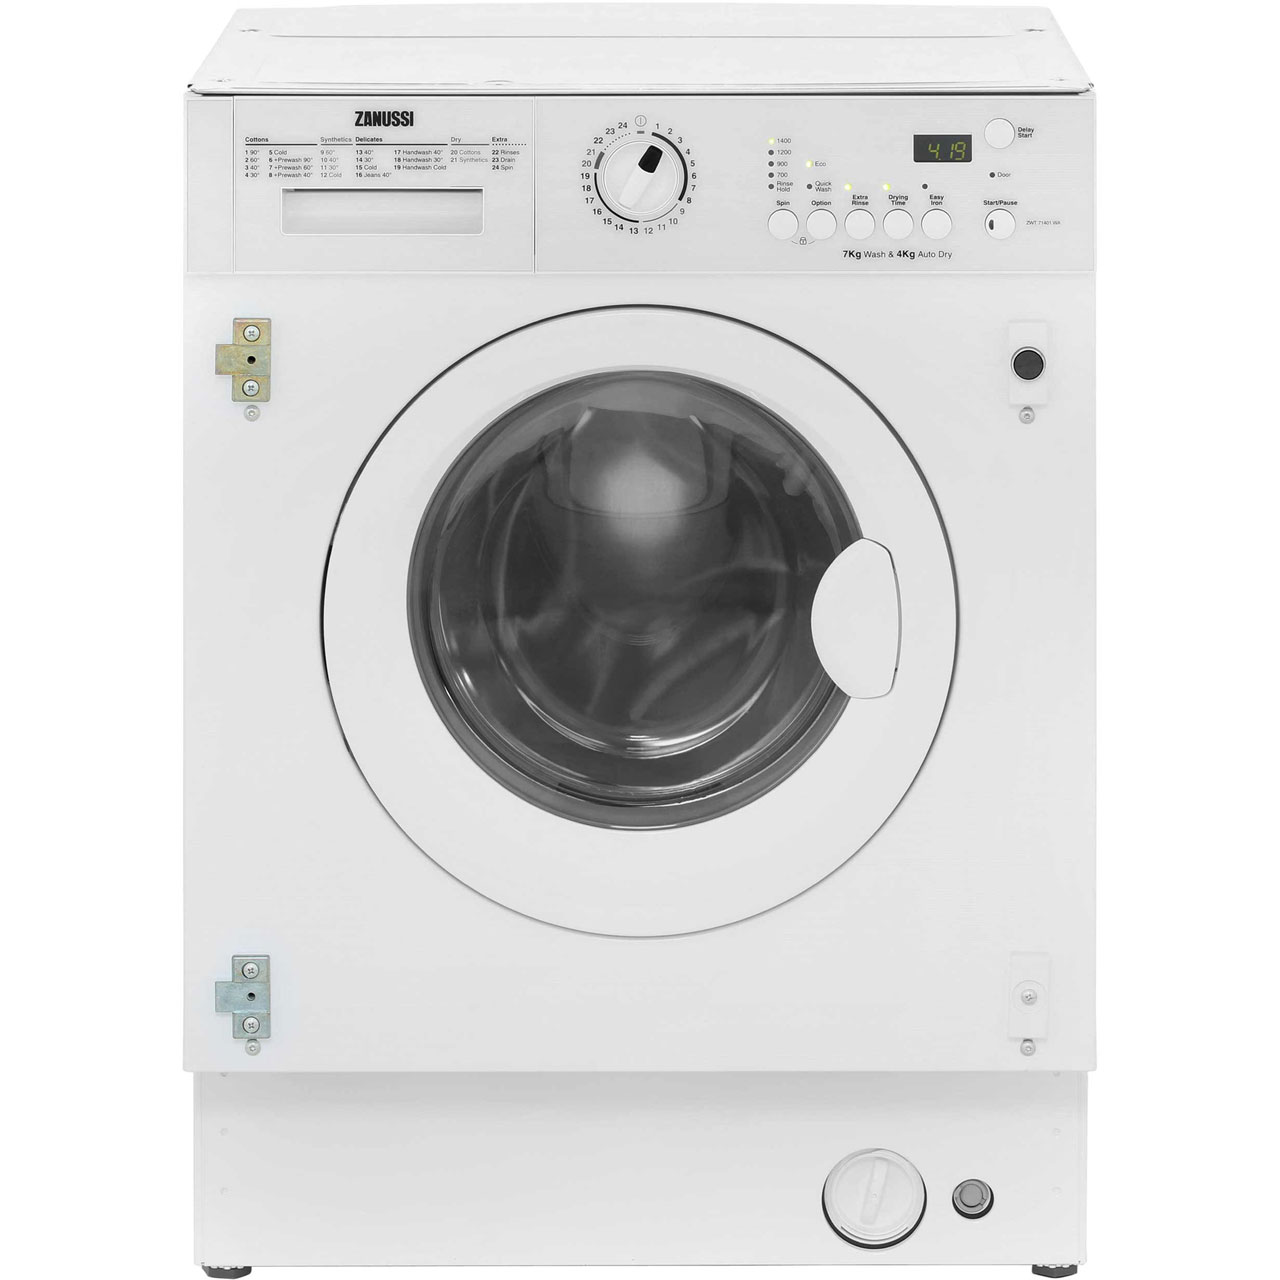 machine a laver whirlpool zen lave linge top whirlpool. Black Bedroom Furniture Sets. Home Design Ideas